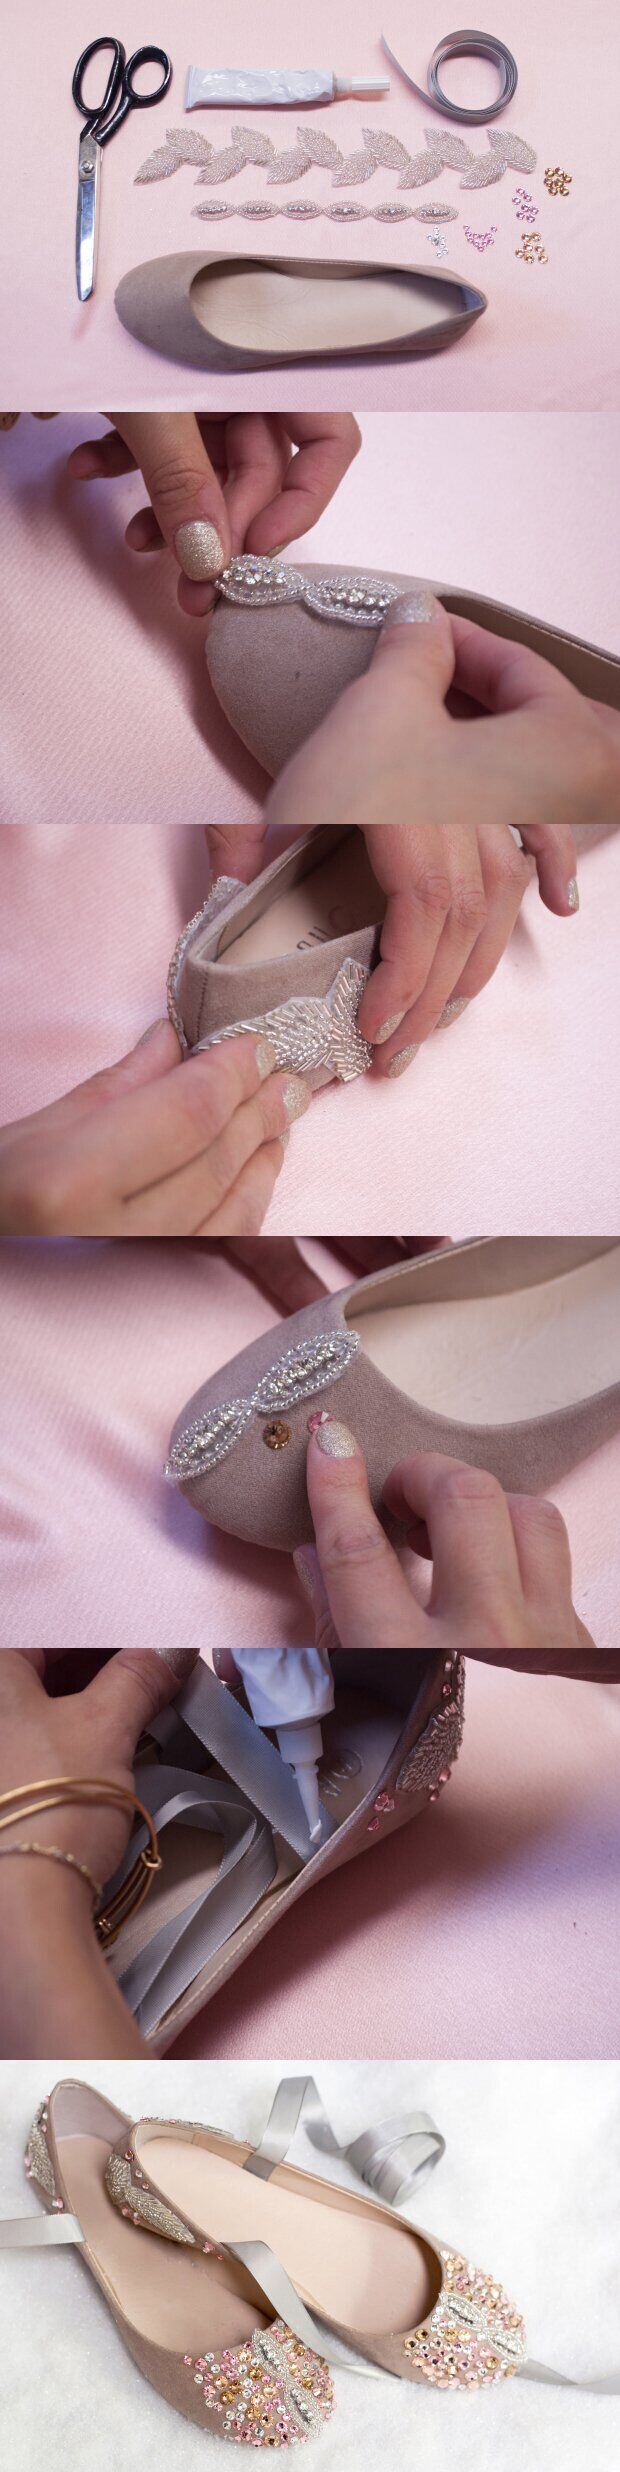 DIY Ballet Flats: Cute Shoe Ideas